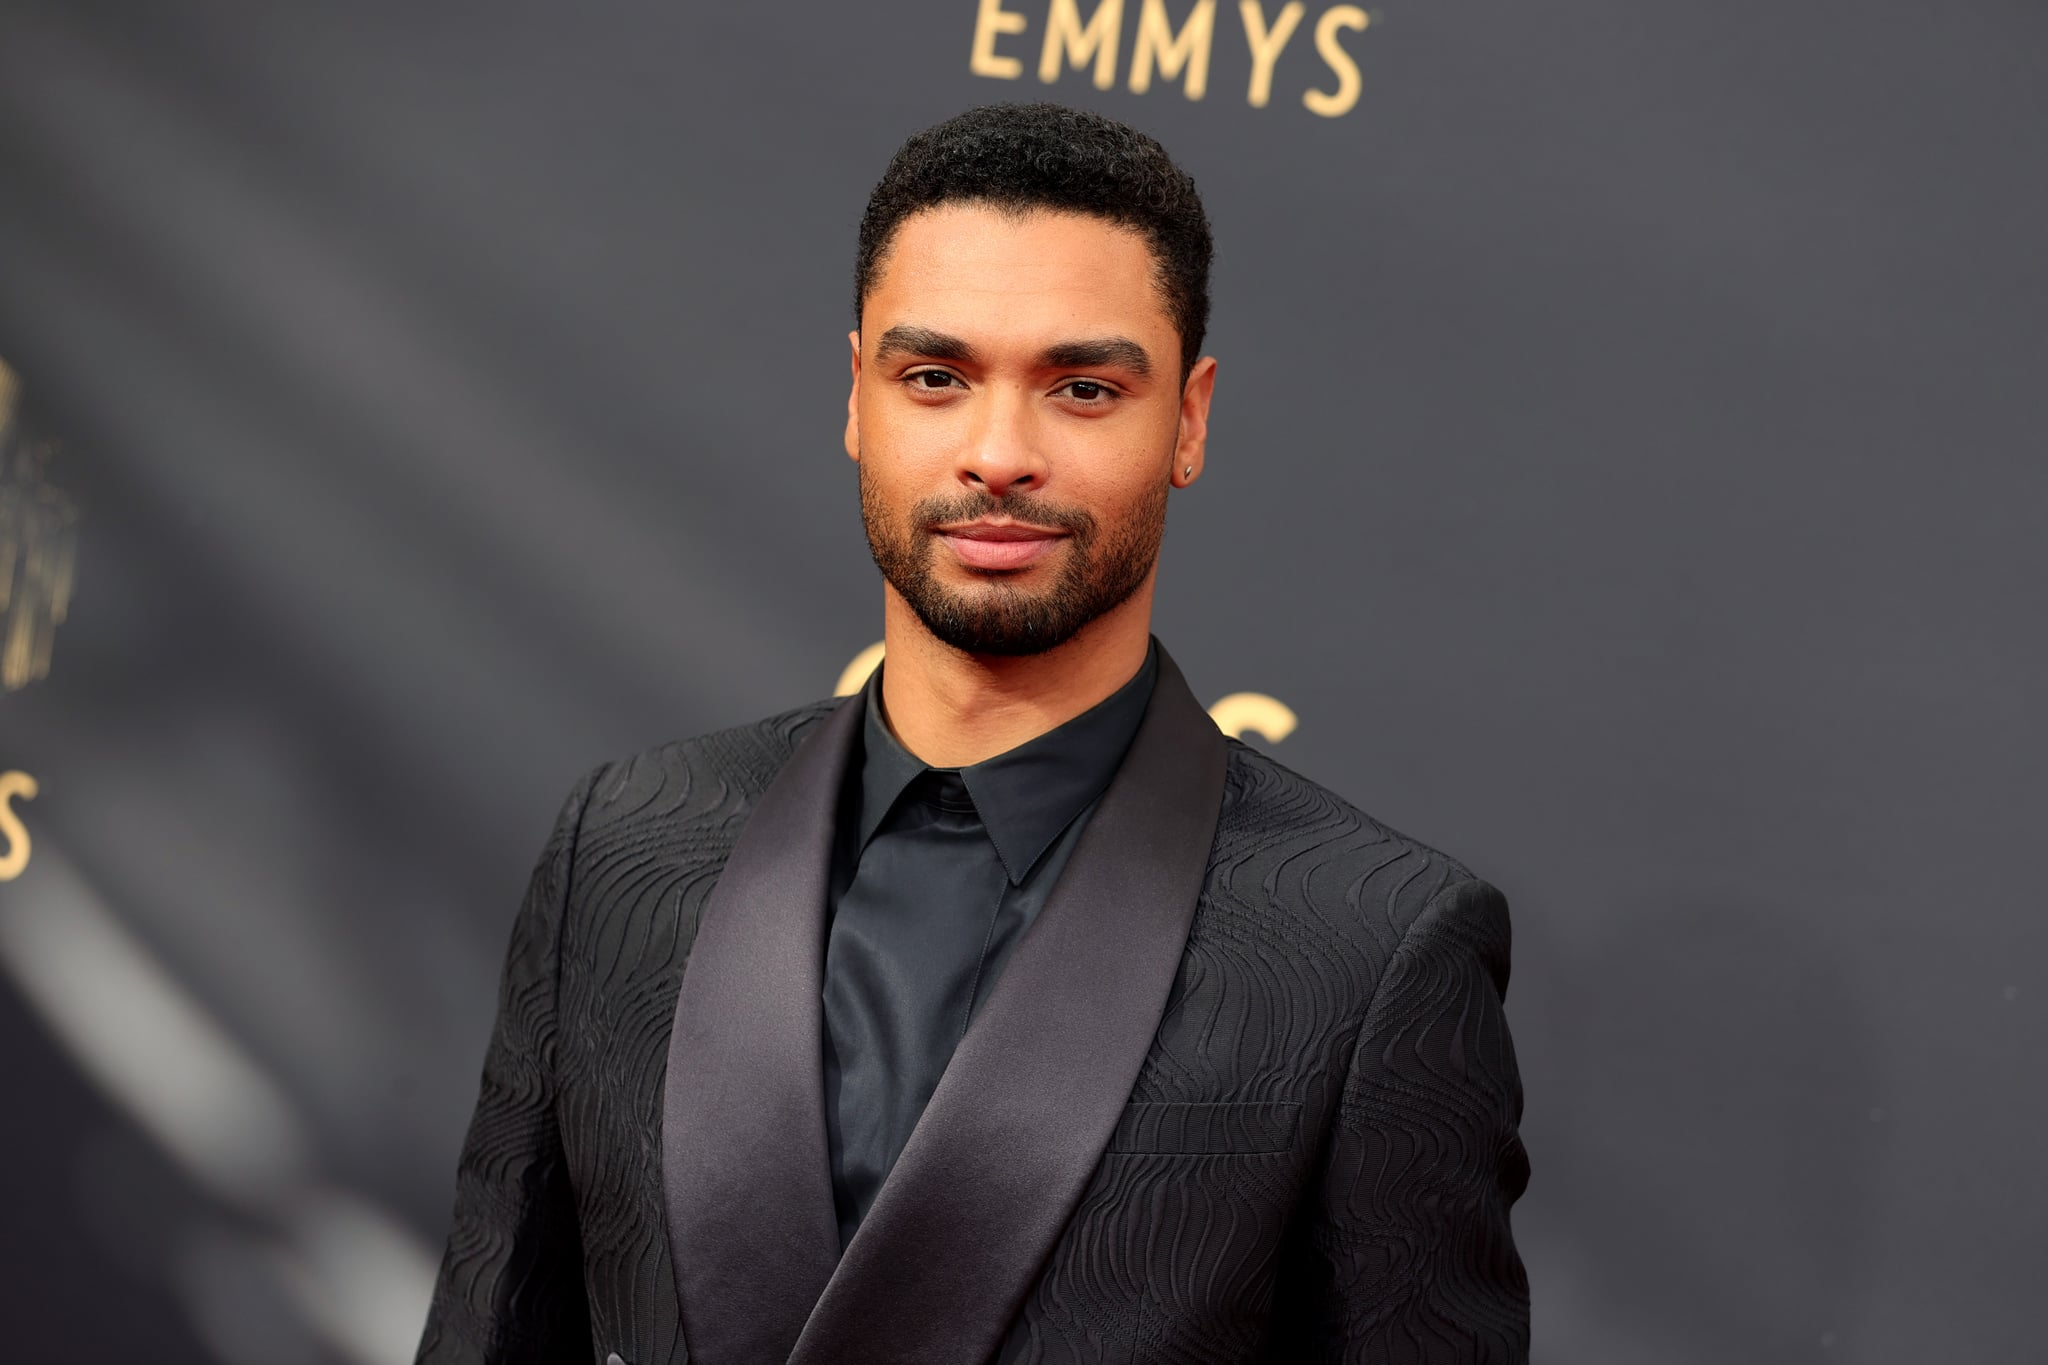 LOS ANGELES, CALIFORNIA - SEPTEMBER 19: Regé-Jean Page attends the 73rd Primetime Emmy Awards at L.A. LIVE on September 19, 2021 in Los Angeles, California. (Photo by Rich Fury/Getty Images)